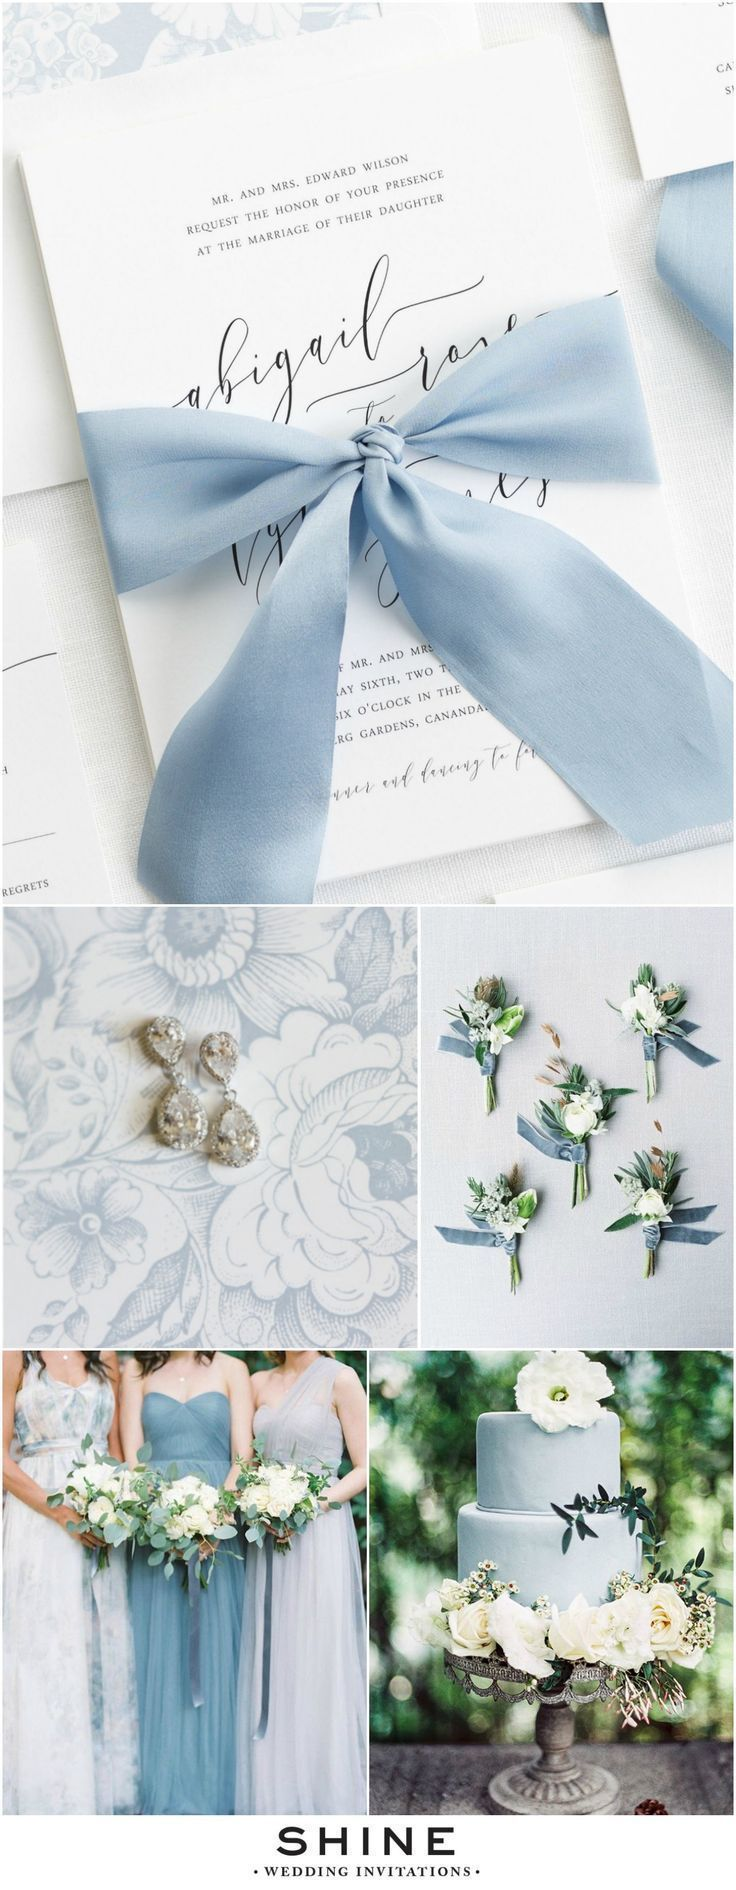 Dusty Blue and Gray Wedding Inspiration   Romantic Dusty Blue Wedding Invitations with Modern Calligraphy and a custom dyed 100% silk charmeuse ribbon   Floral Envelope Liner, Dusty Blue Bridesmaids Dresses, Blue Cake, Velvet Boutonnieres